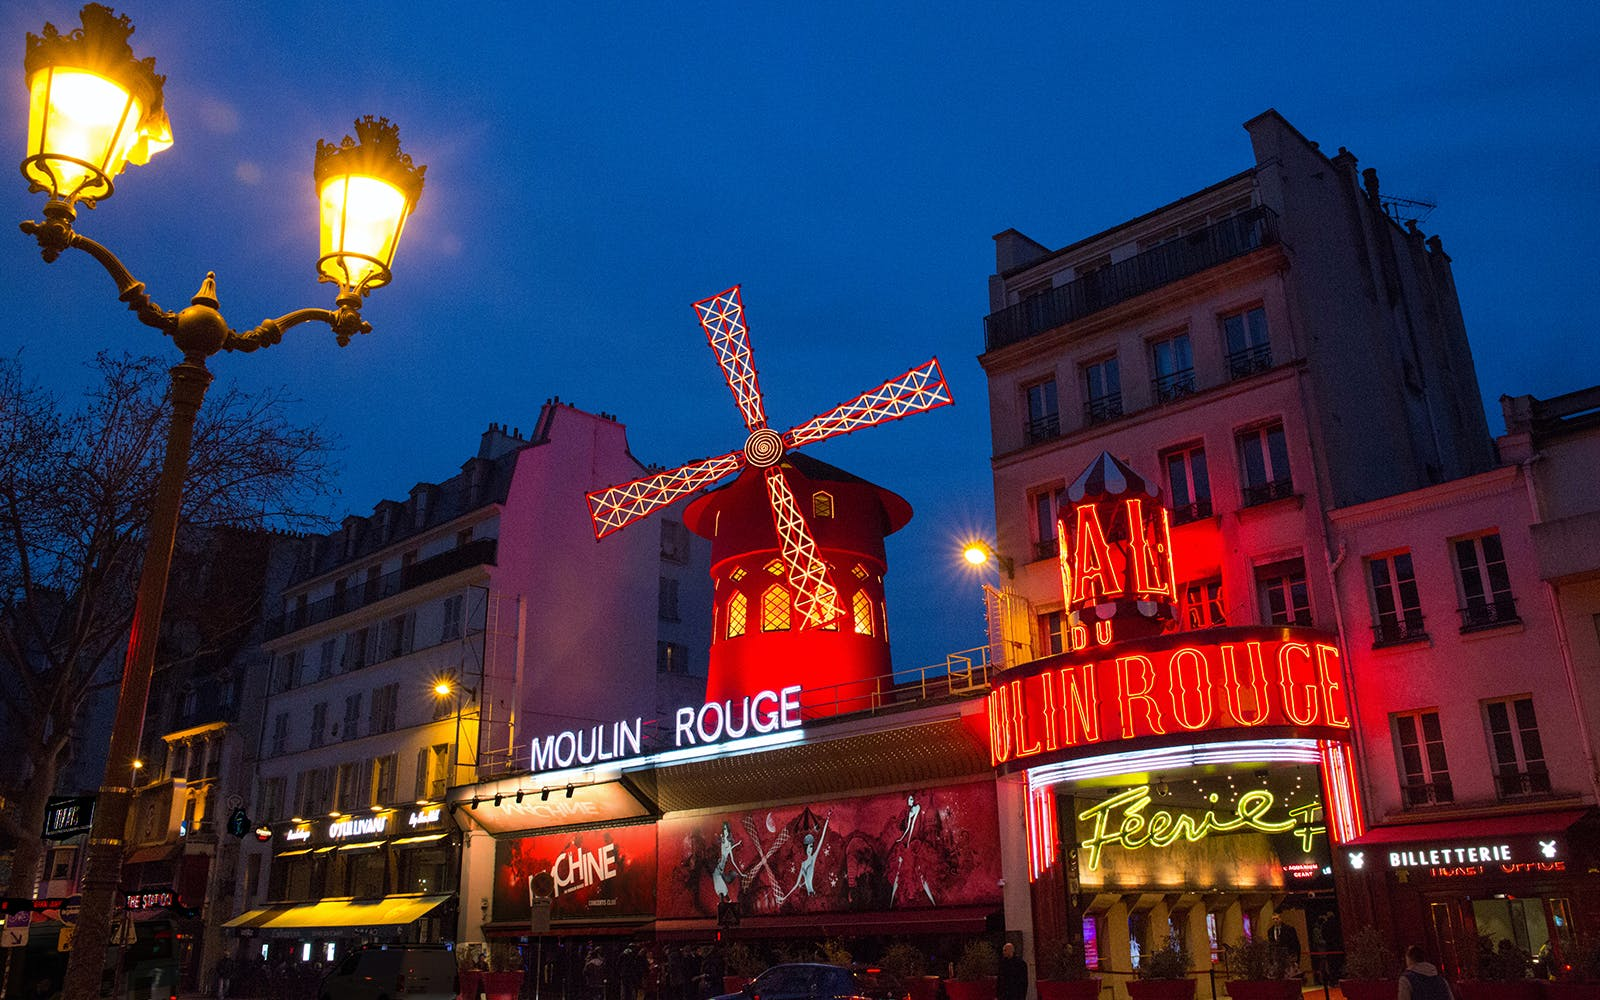 moulin rouge show with champagne + seine river cruise-3